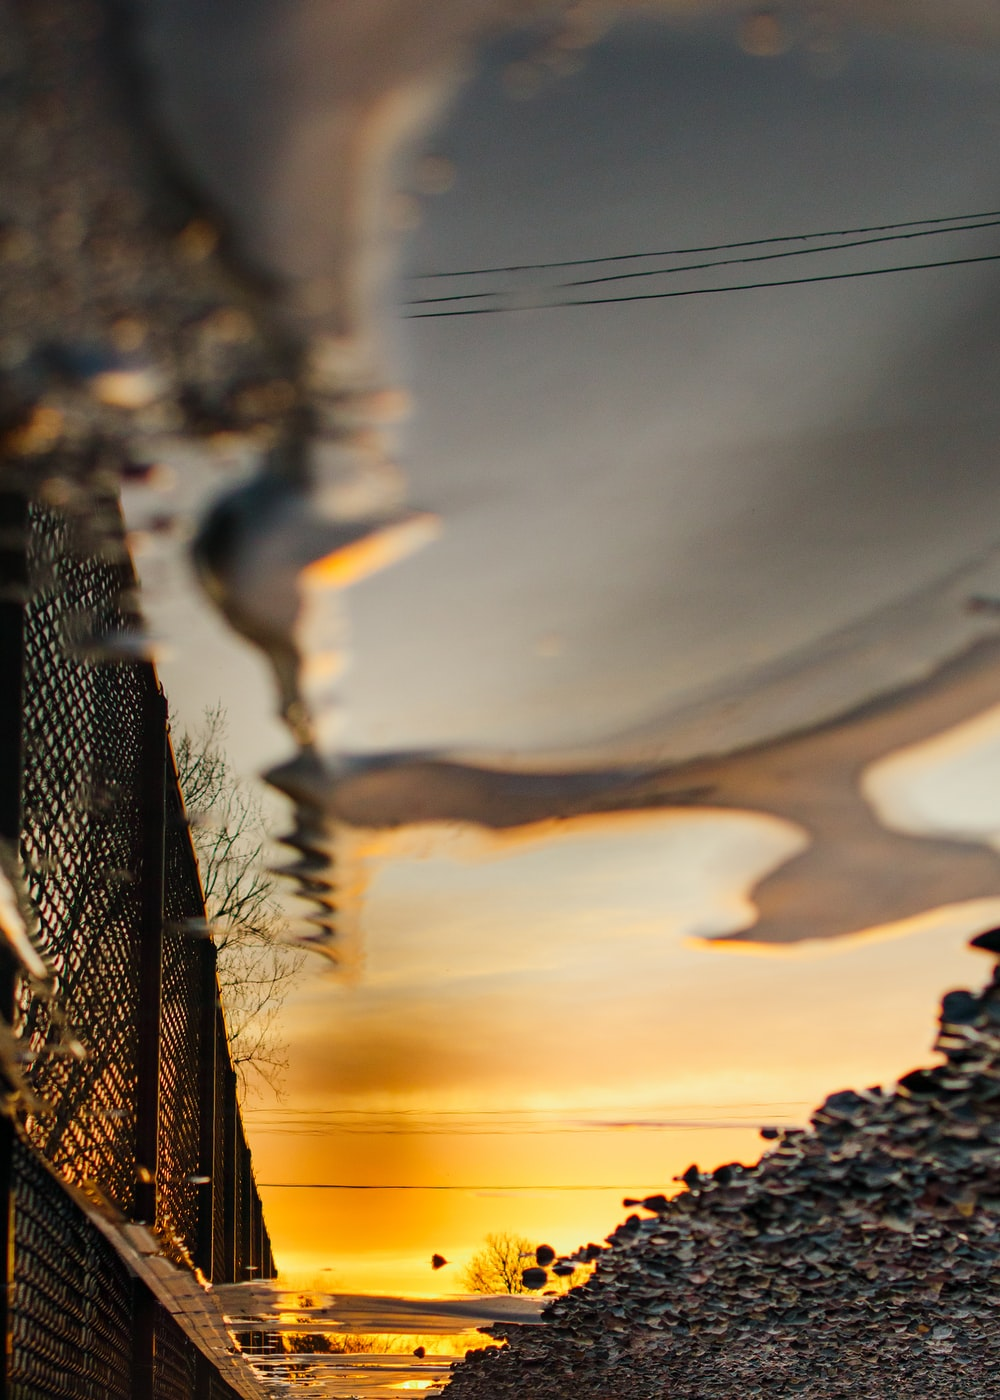 black metal fence near body of water during sunset